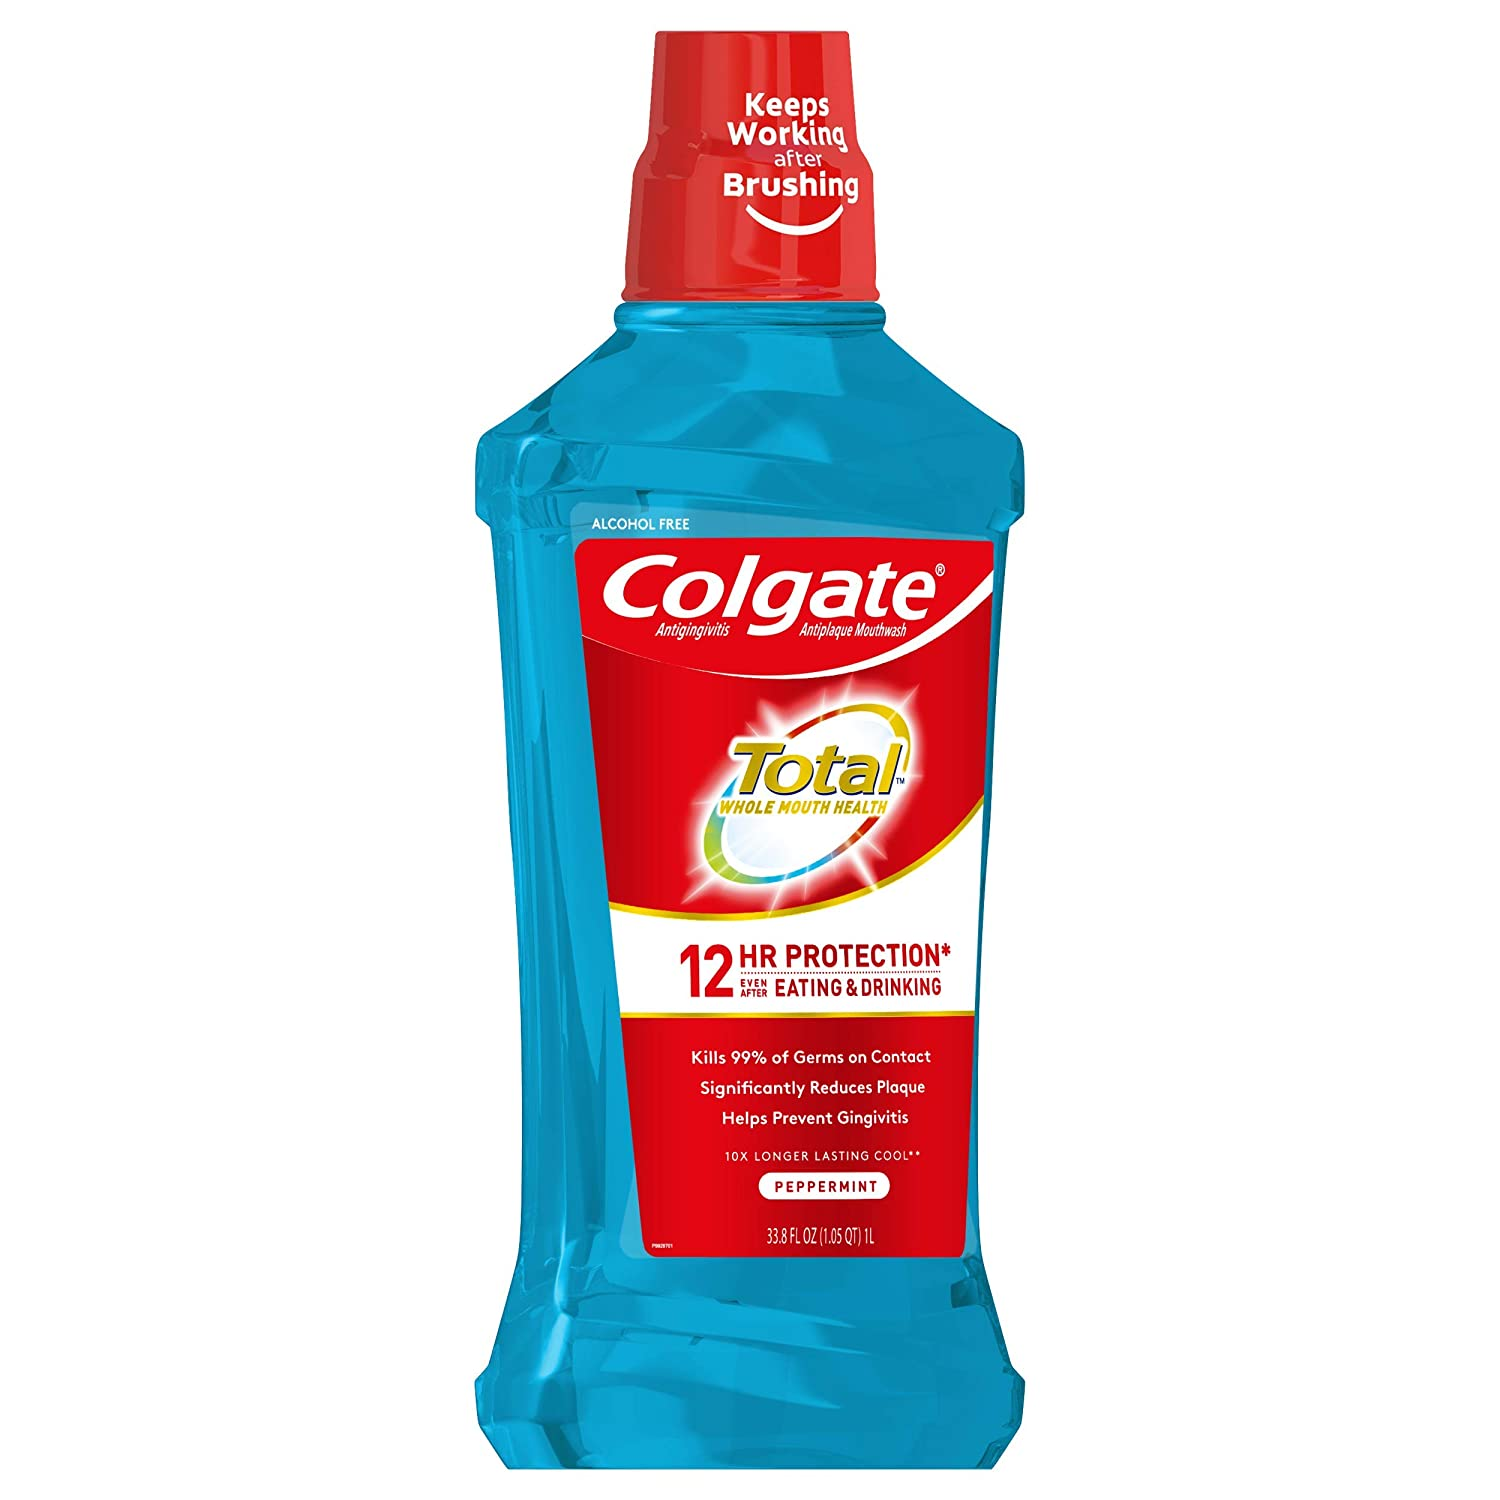 Colgate Total Alcohol Free Mouthwash for Bad Breath, Peppermint - 1L, 33.8 fluid ounce (3 Pack) : Beauty